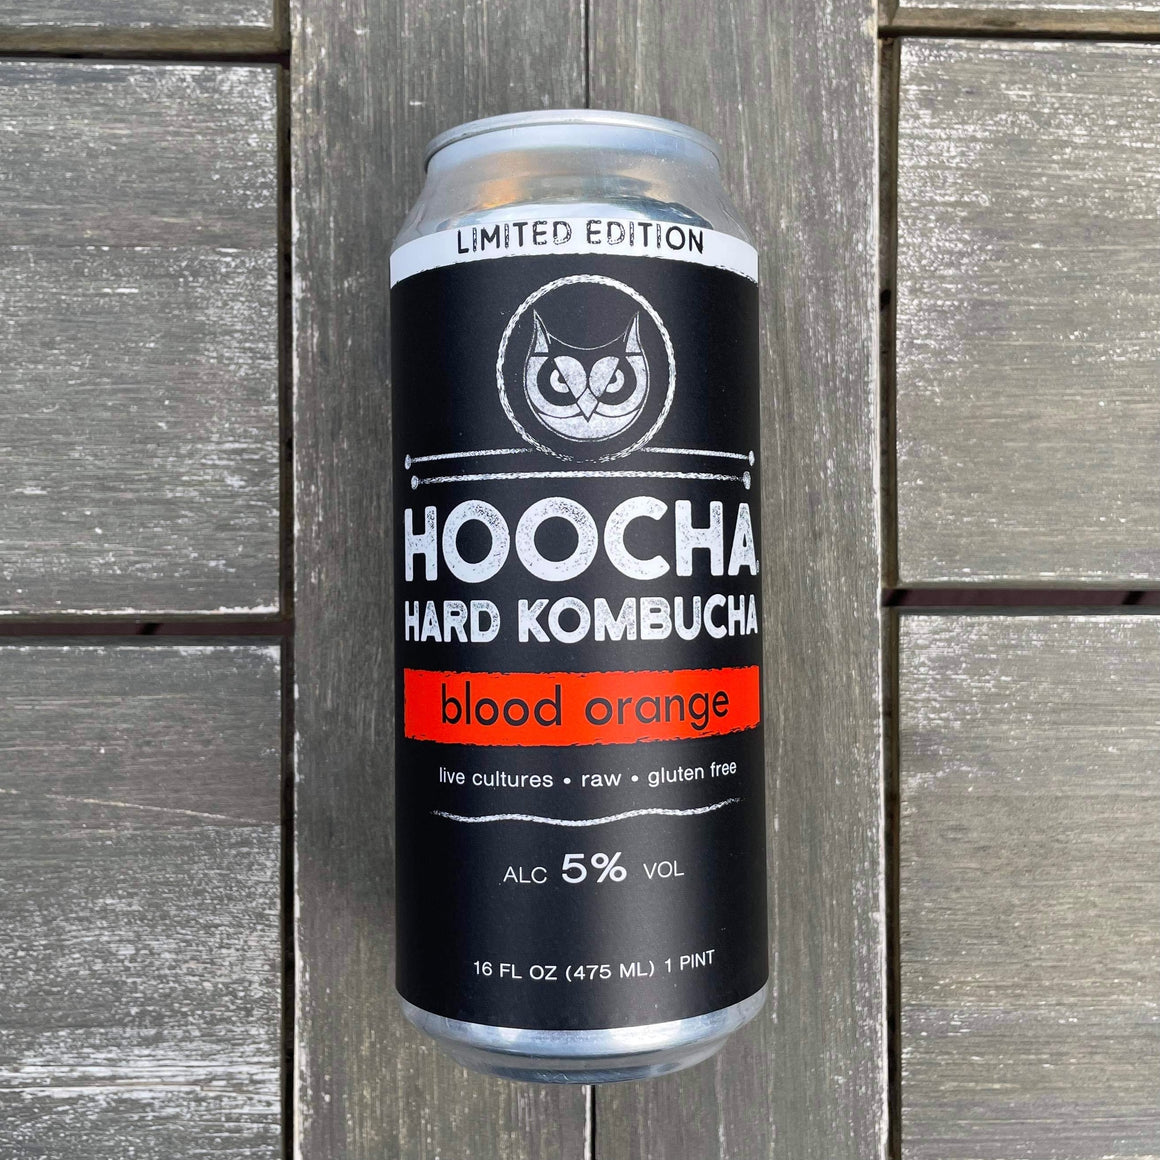 Limited Edition Blood Orange Hard Kombucha 4-Pack, 16 oz. Cans